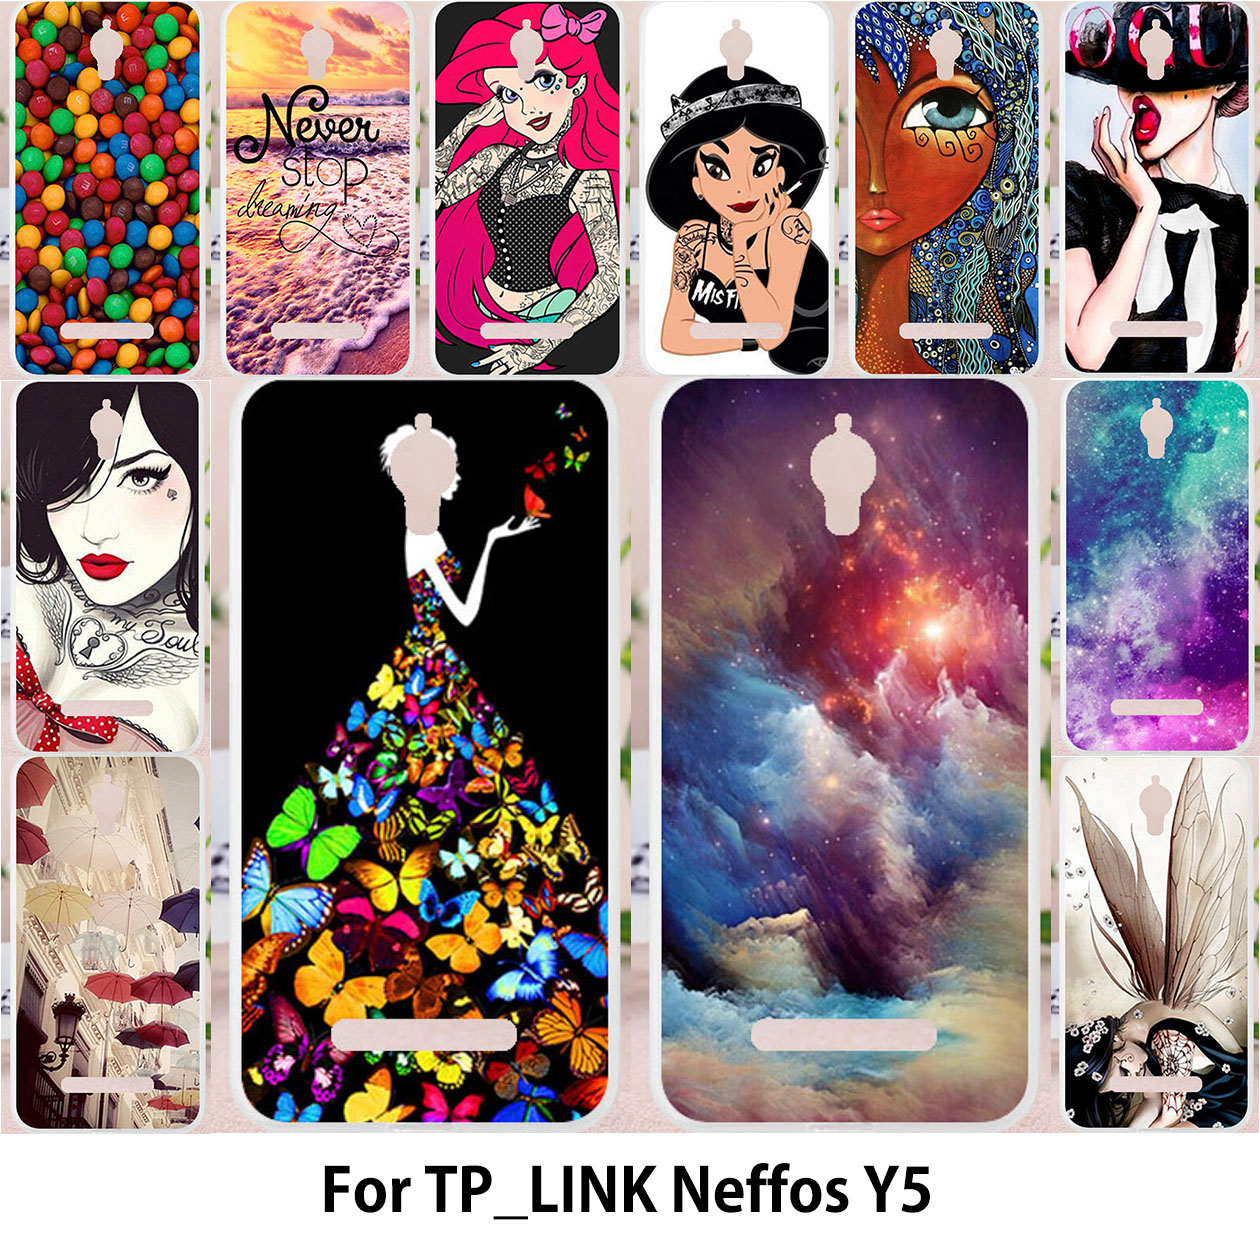 TAOYUNXI For TP-LINK Neffos Y5 TP802A cases Silicone Case For TPLINK Neffos Y5 tp link Painting Dream Girl Sky Candy Patterned